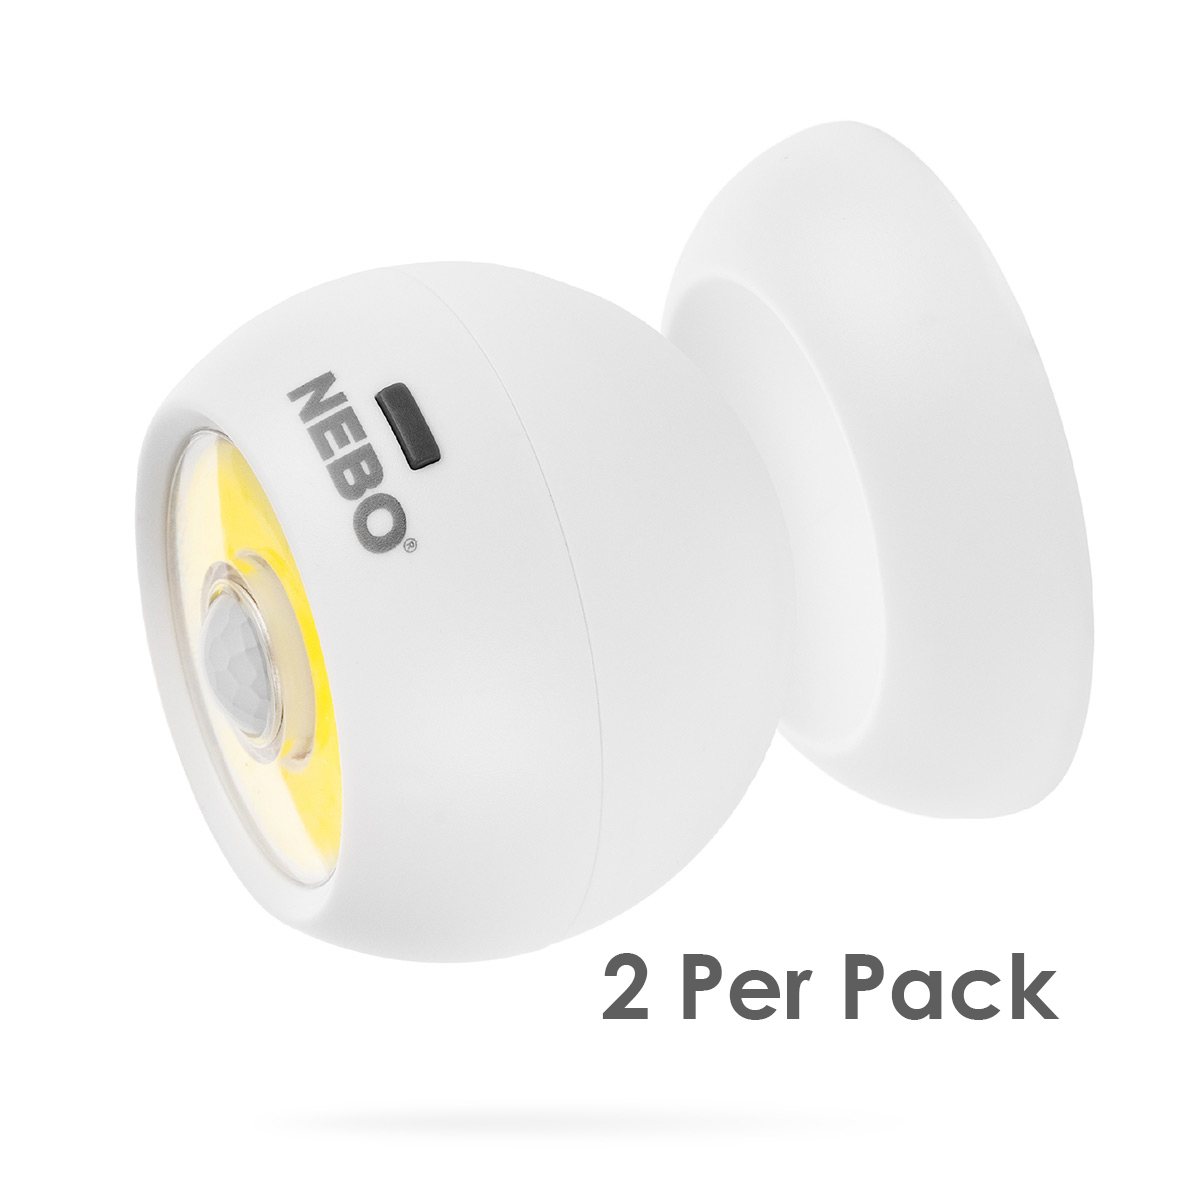 Nebo eye smart motion detection light